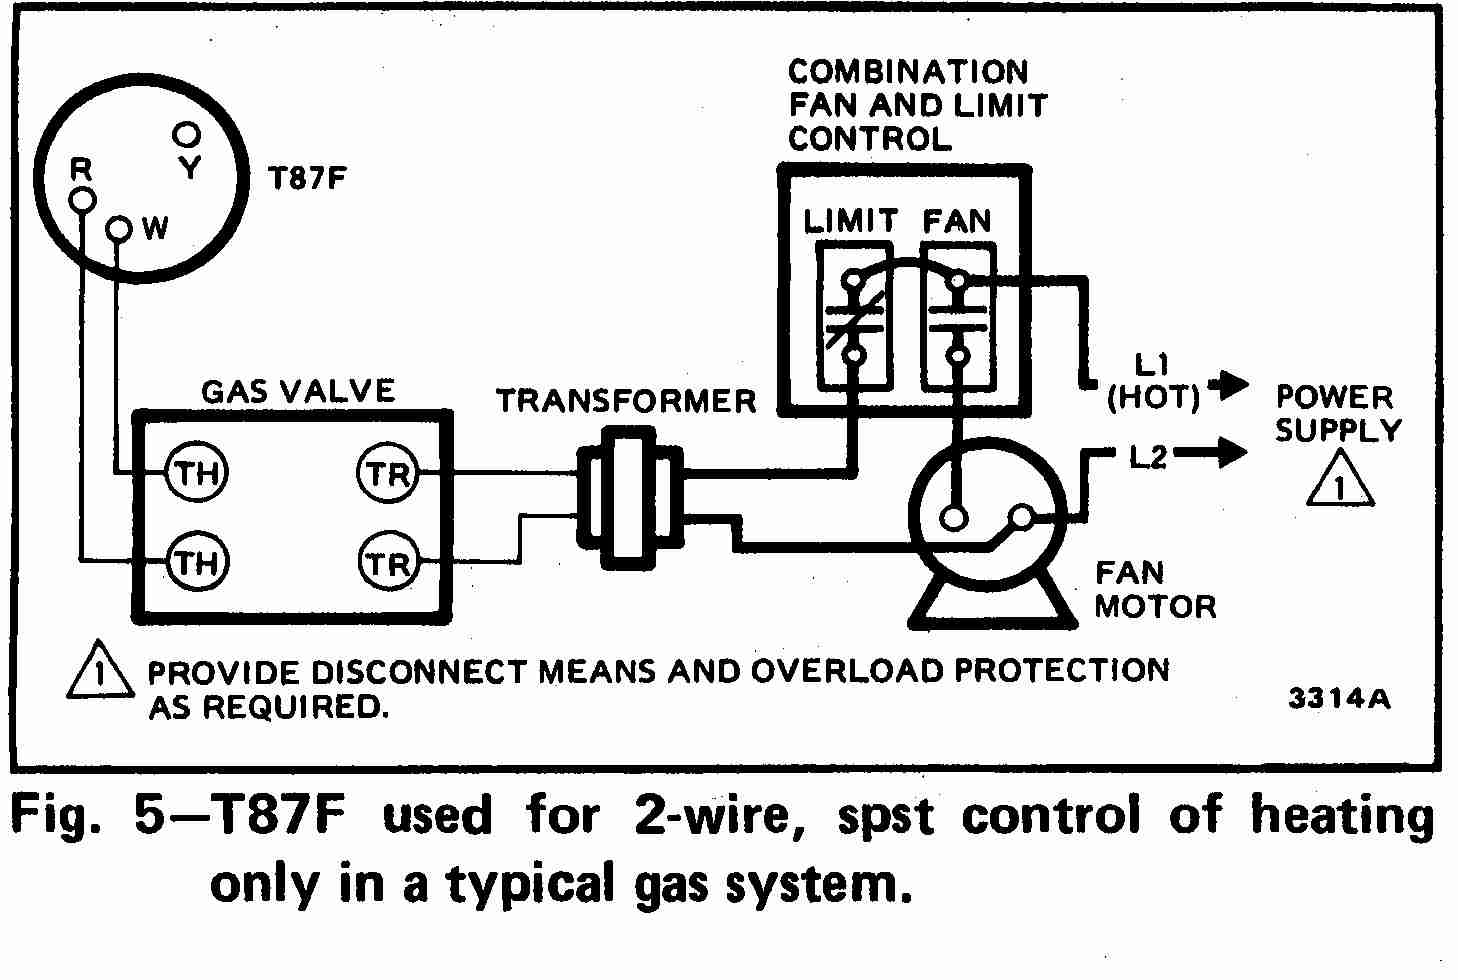 Hvac Wiring Diagrams Diagram Data Coleman Electric Furnace Room Thermostat For Systems Heating And Air Conditioning Honeywell T87f